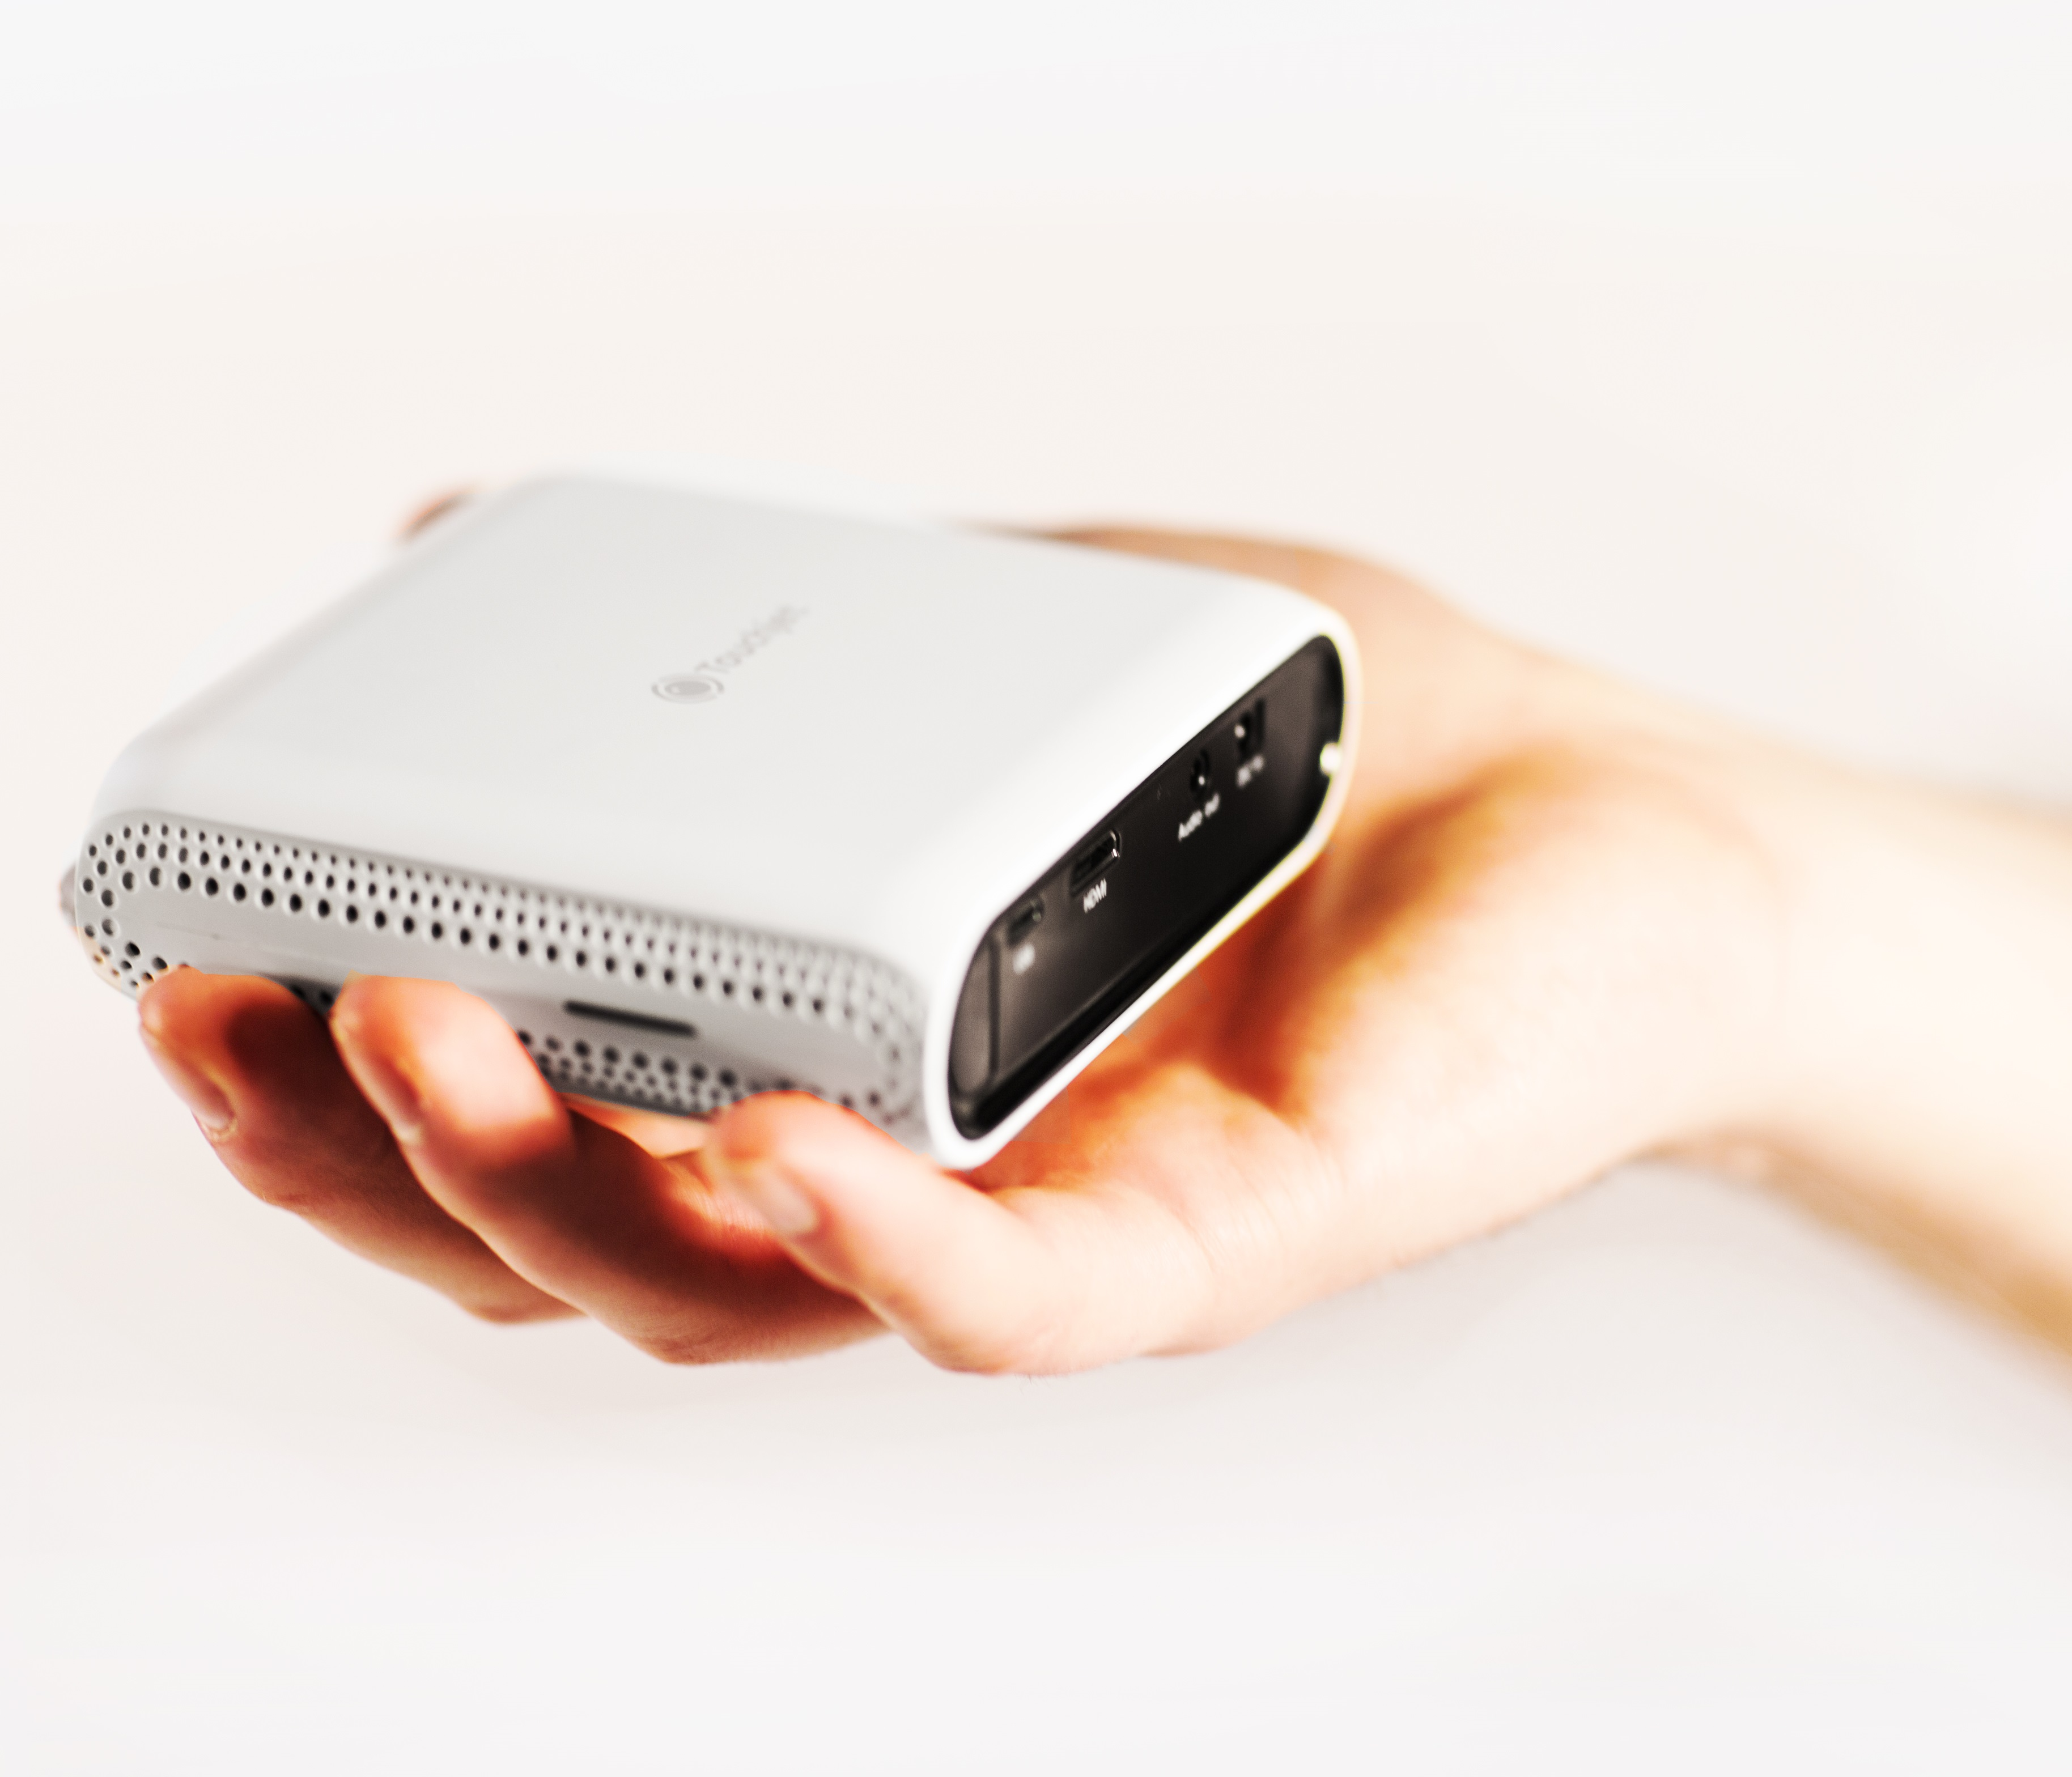 Touchjet Pond Projector. Credit: Touchjet